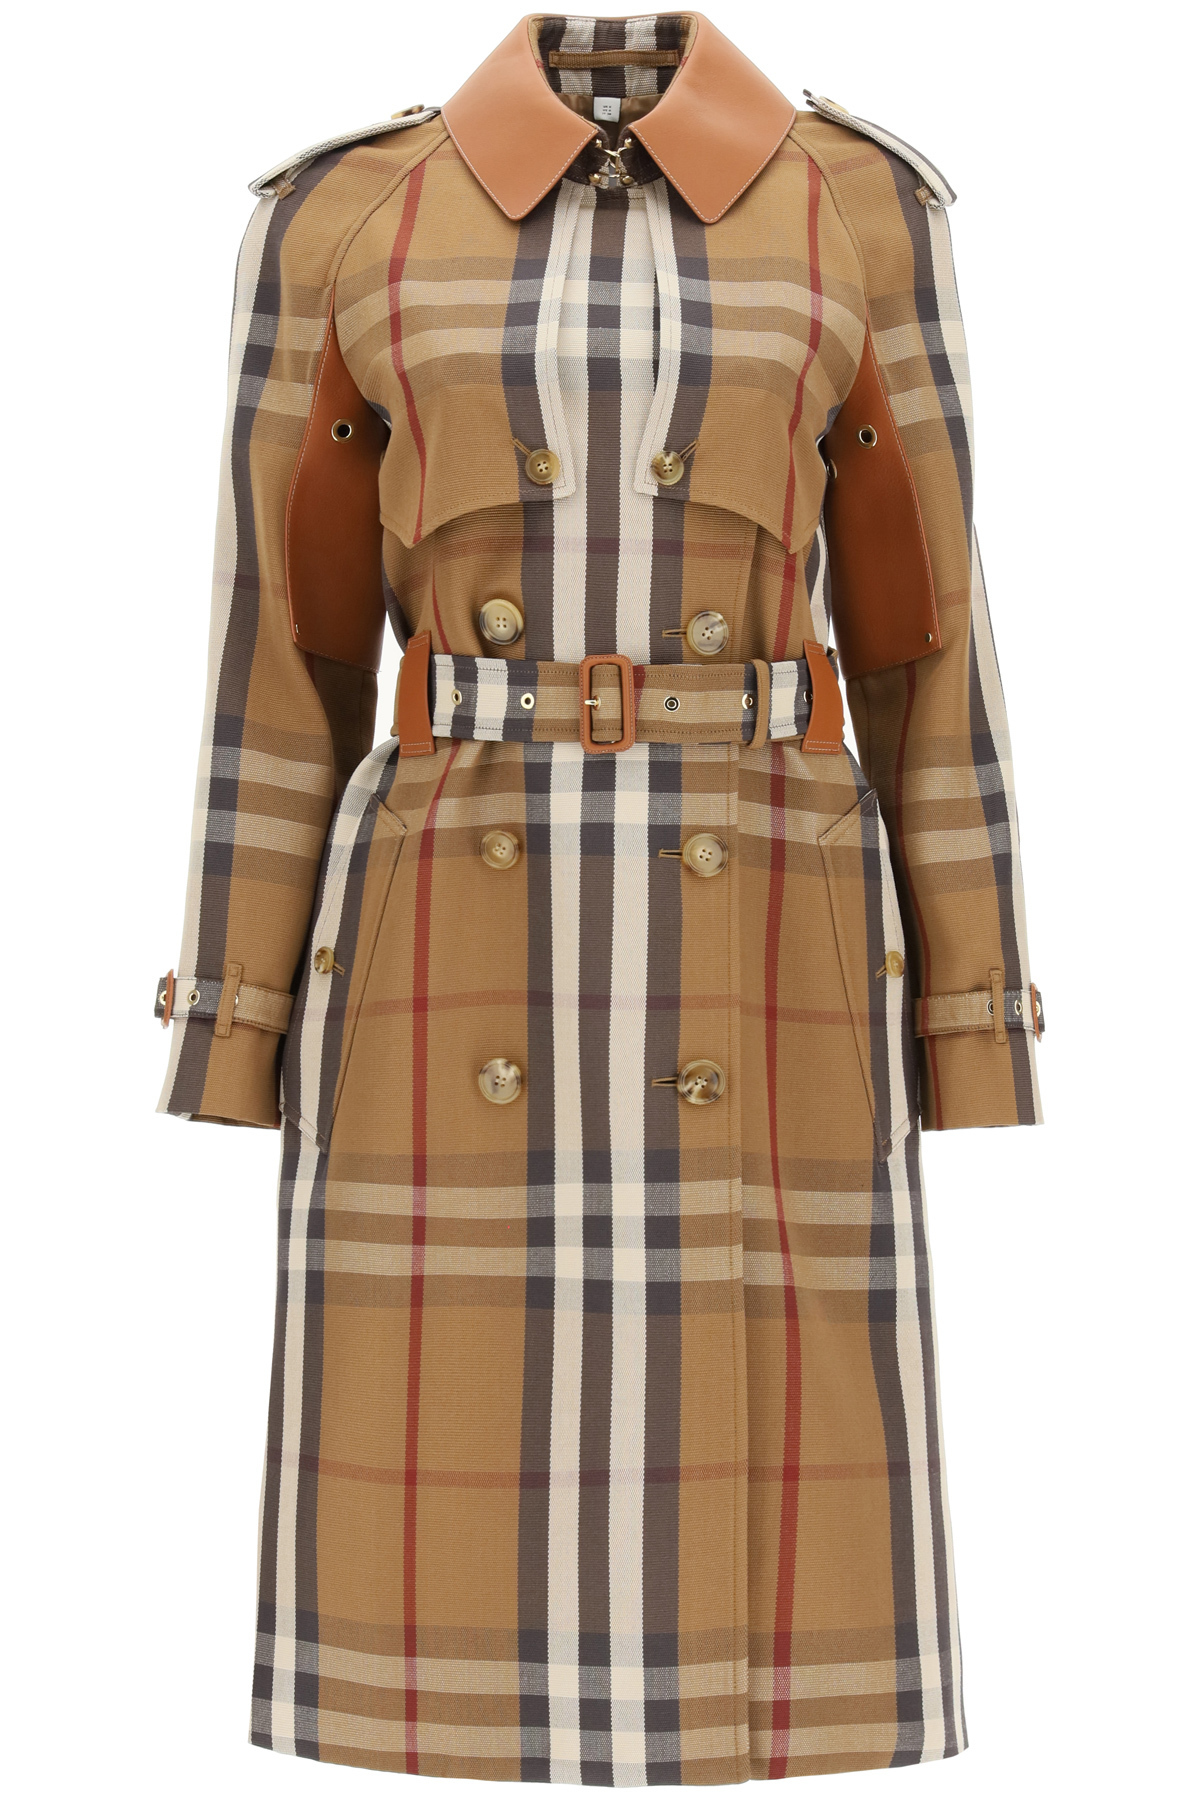 Burberry RAINHAM TRENCH COAT WITH LEATHER DETAILS